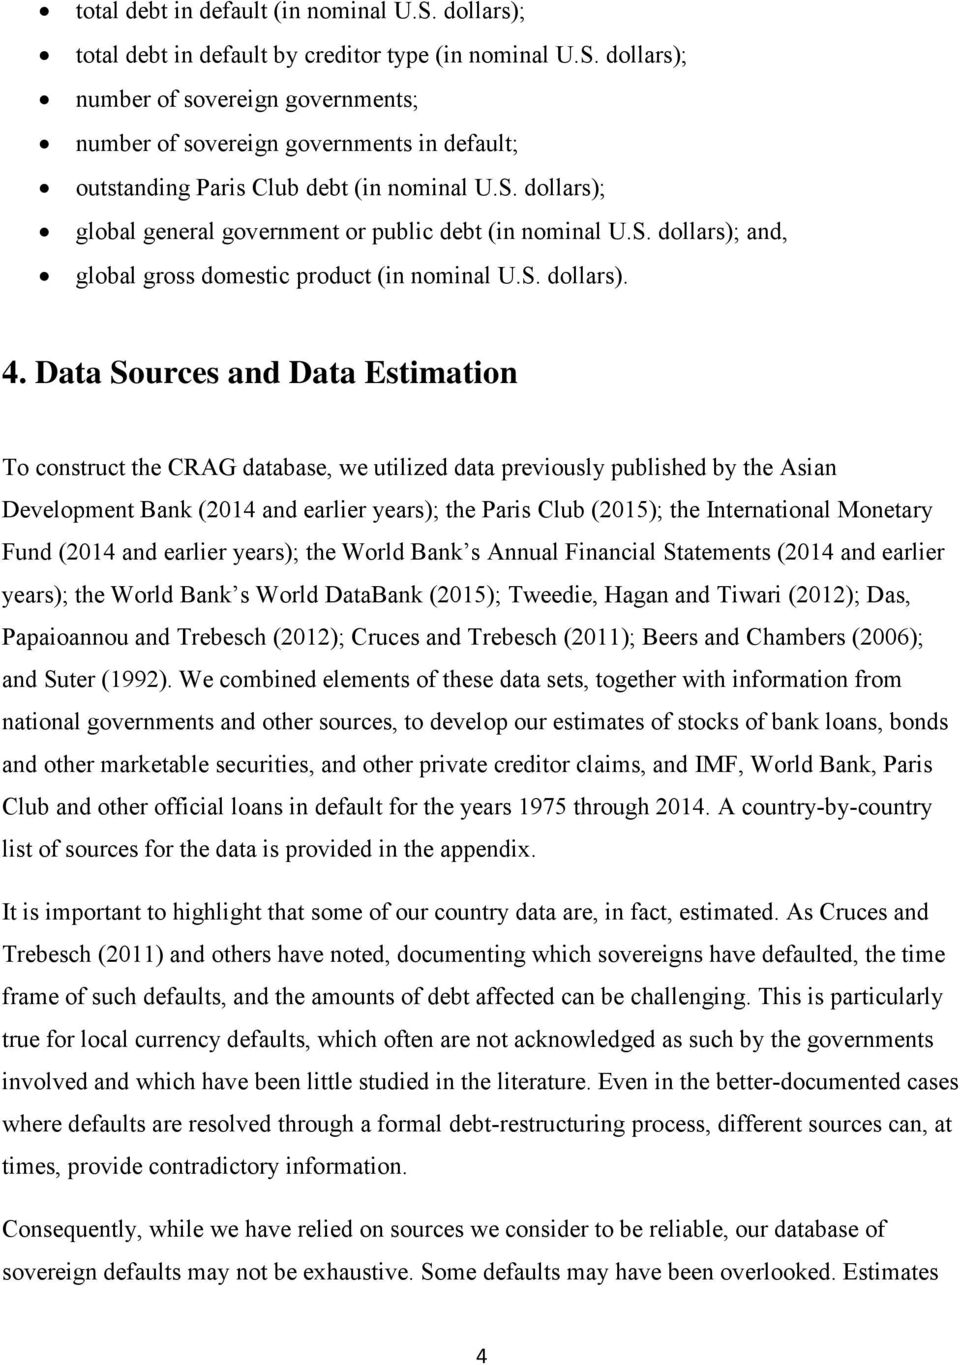 Data Sources and Data Estimation To construct the CRAG database, we utilized data previously published by the Asian Development Bank (2014 and earlier years); the Paris Club (2015); the International